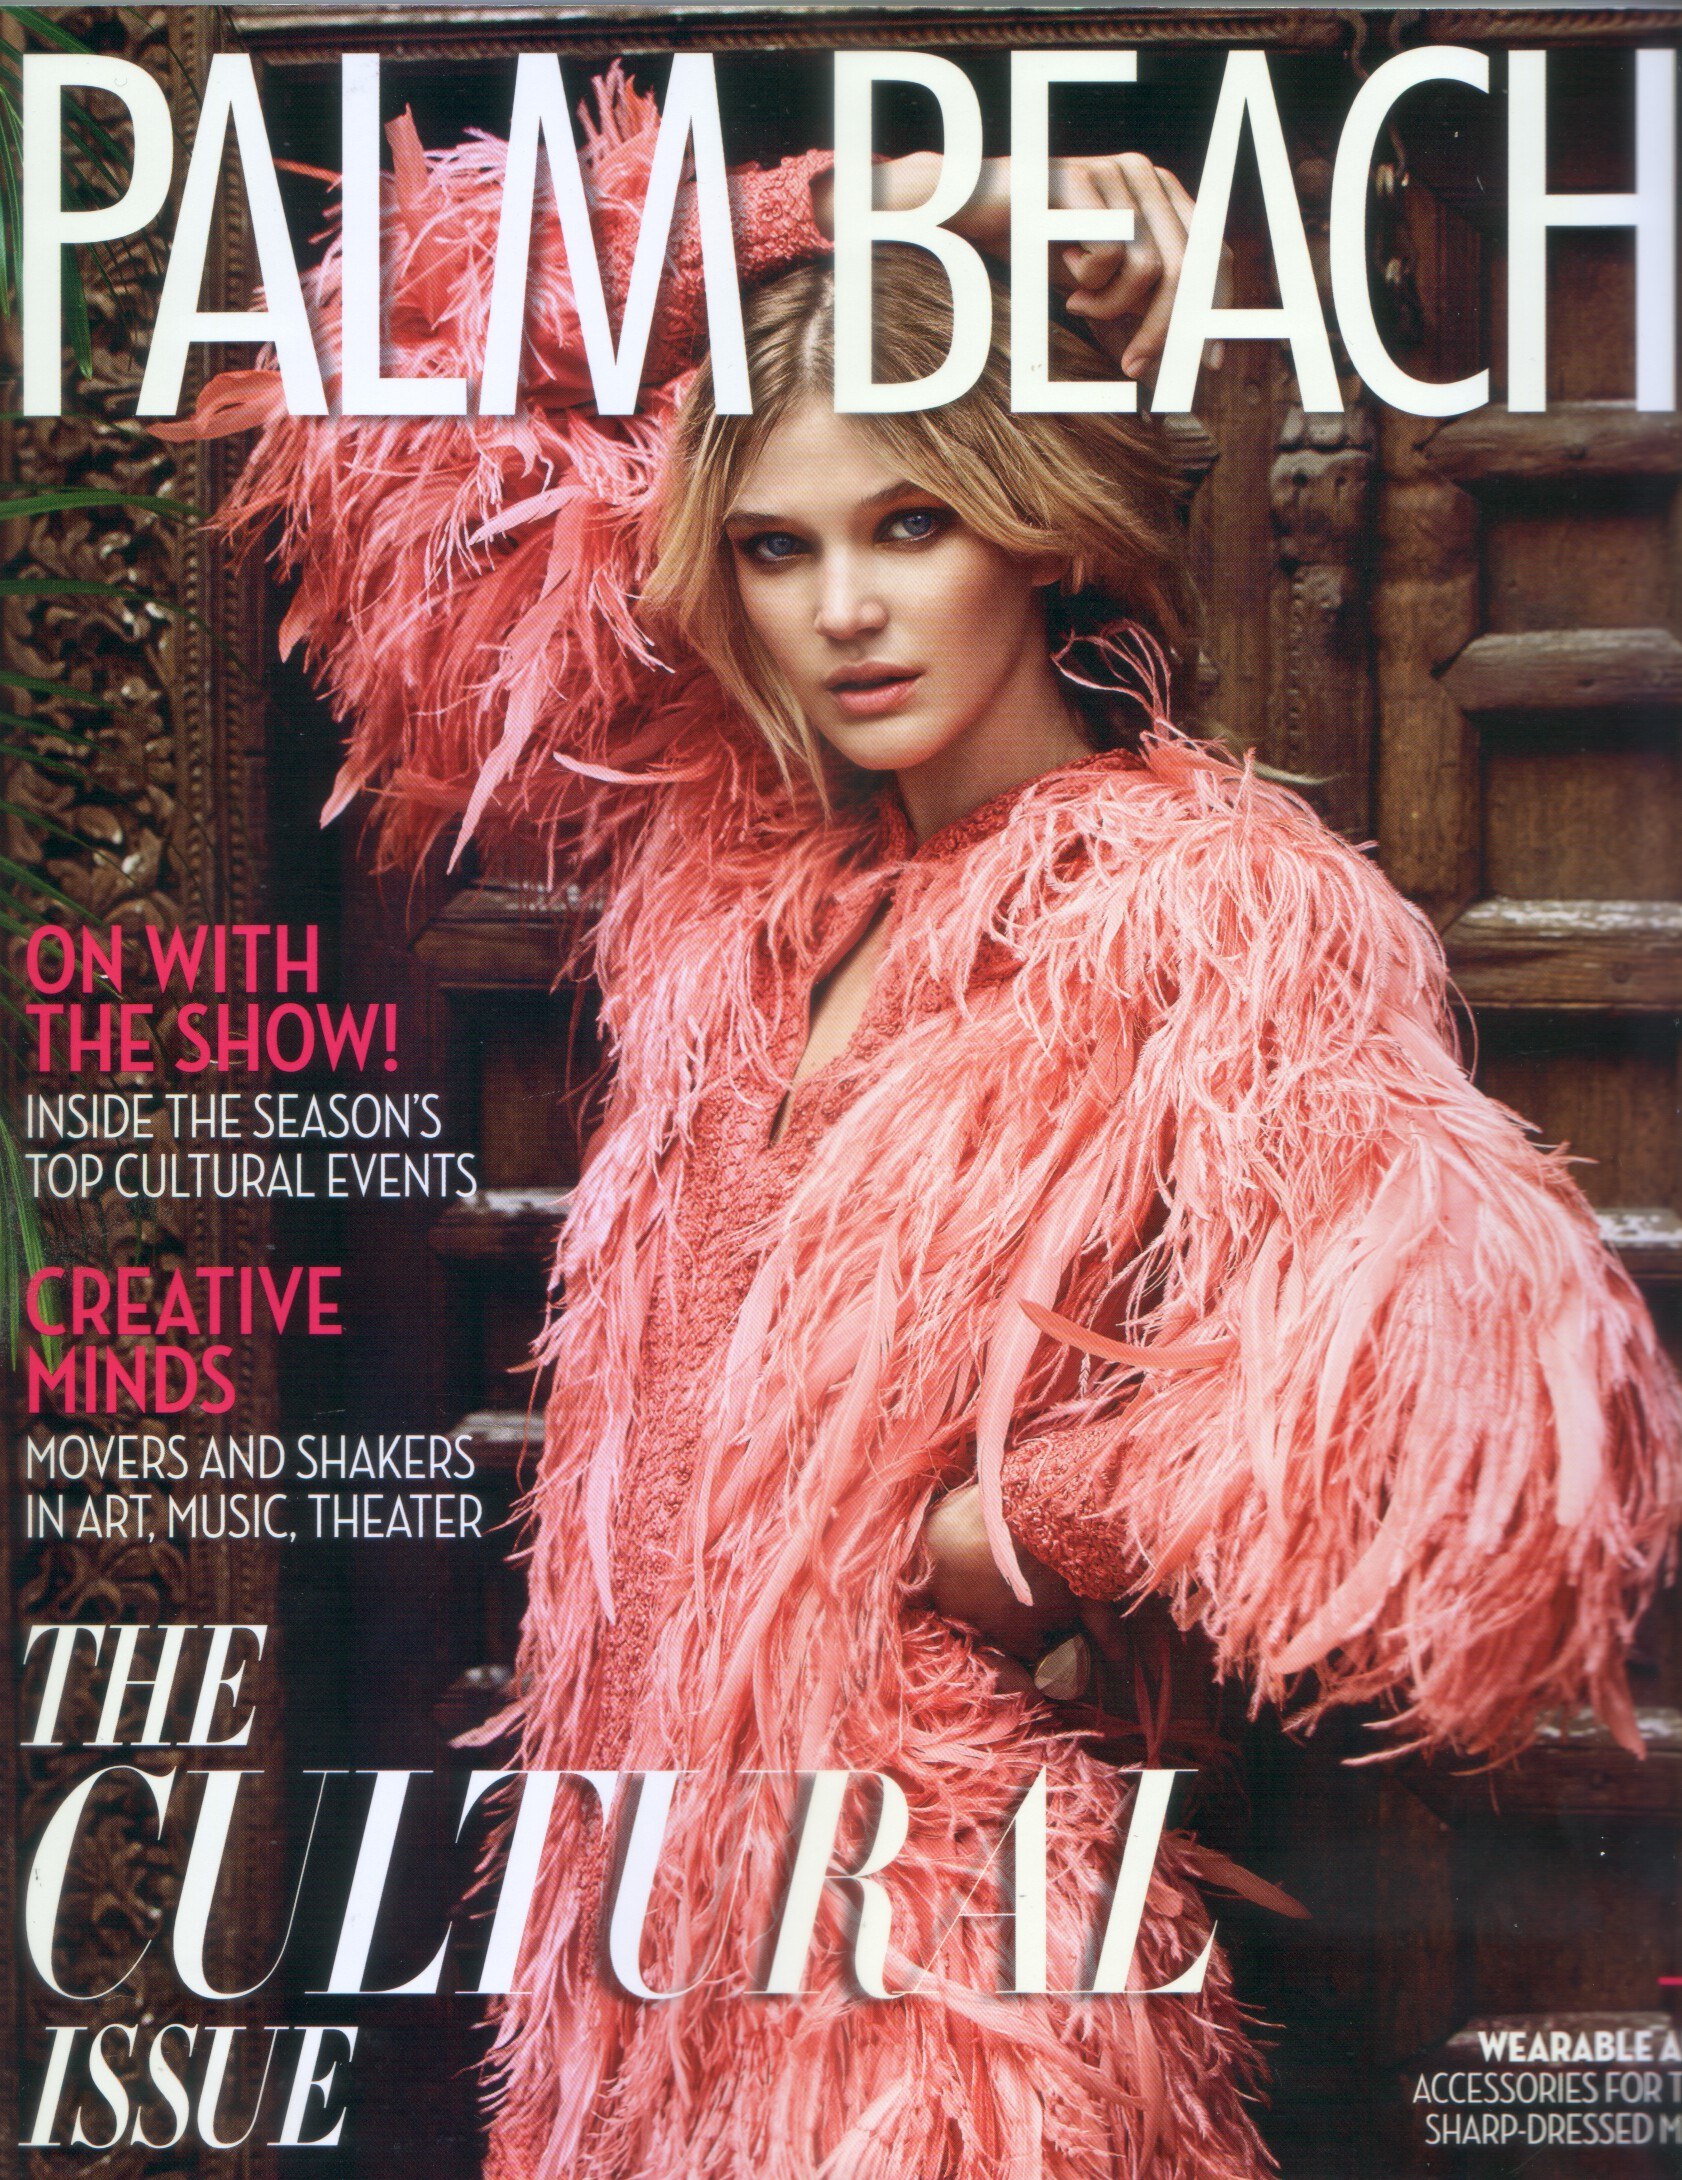 Palm Beach Illustrated featured a few of Helga's favorite things.